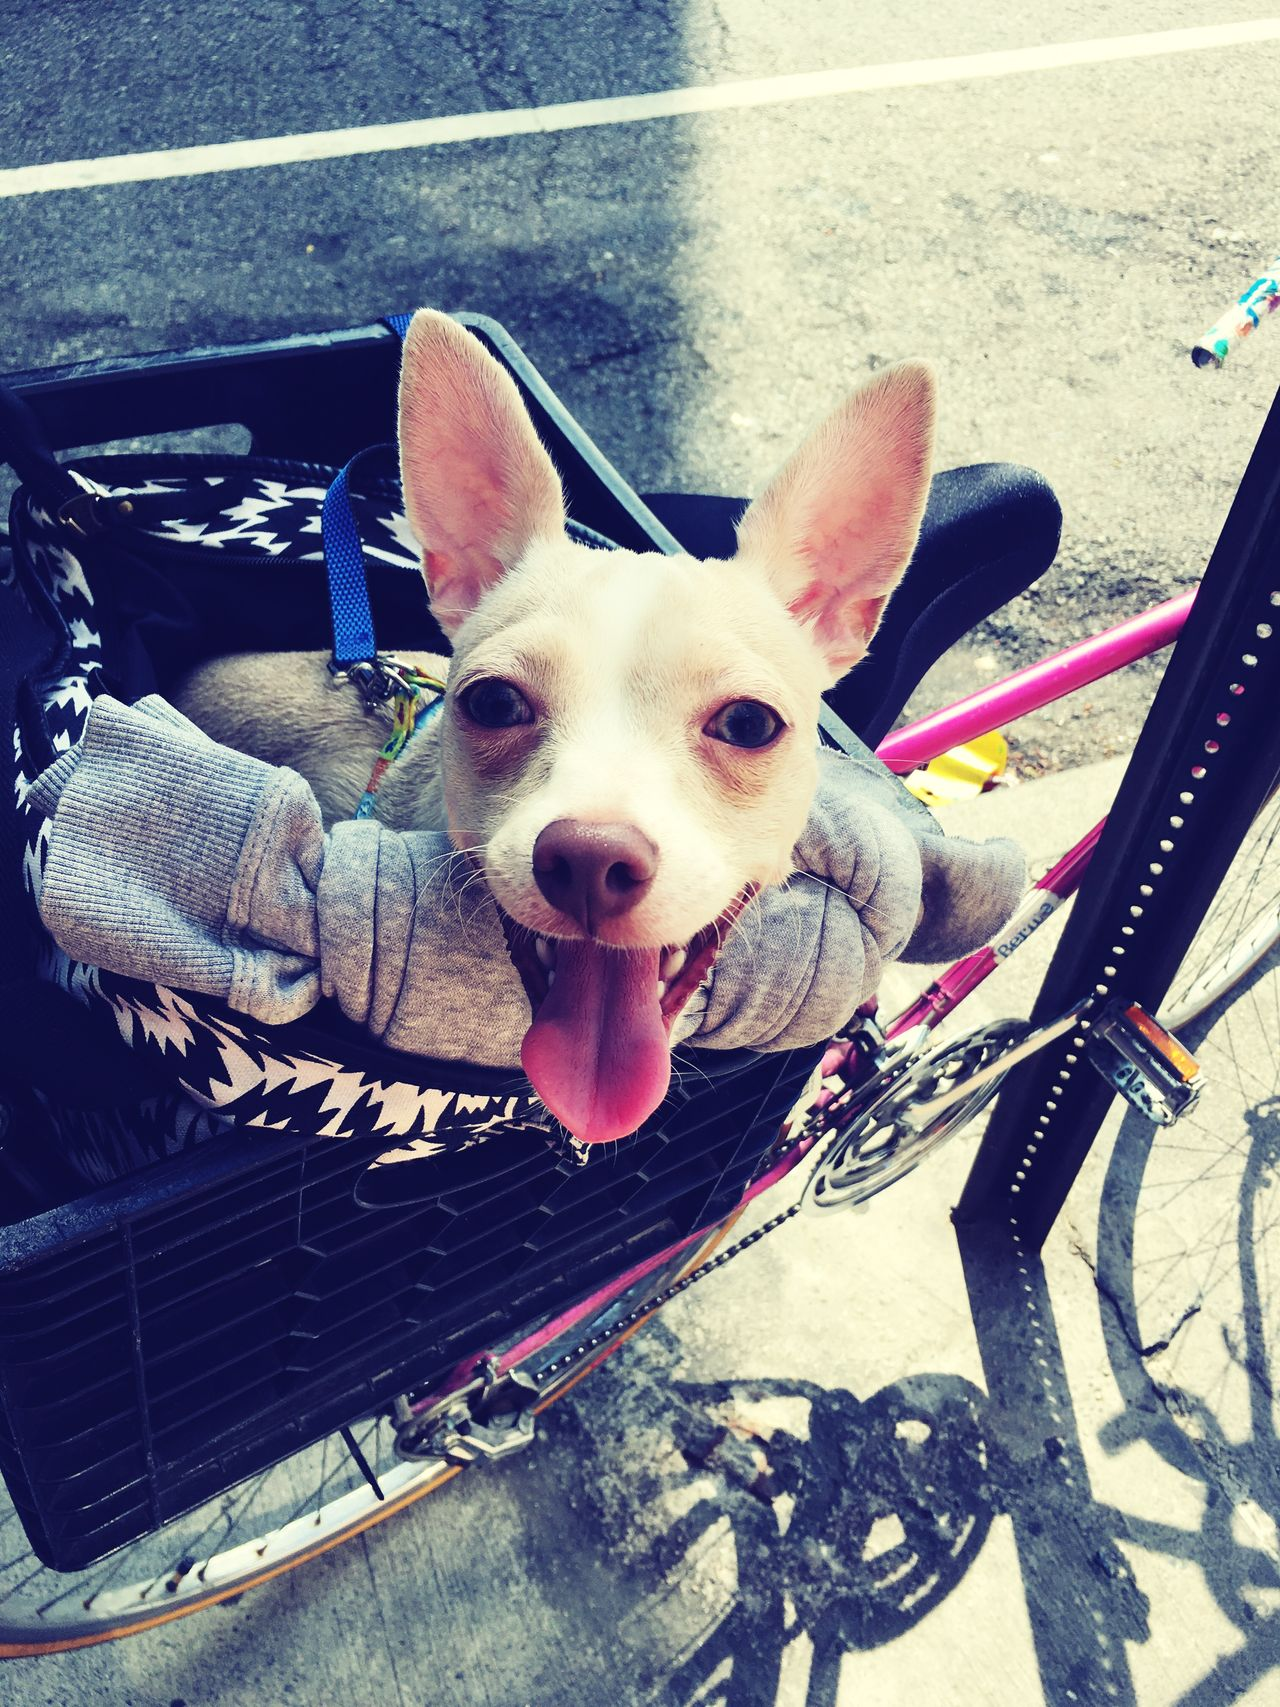 My Pet NYC Washington Heights My Pup Denim He's Ready To Ride